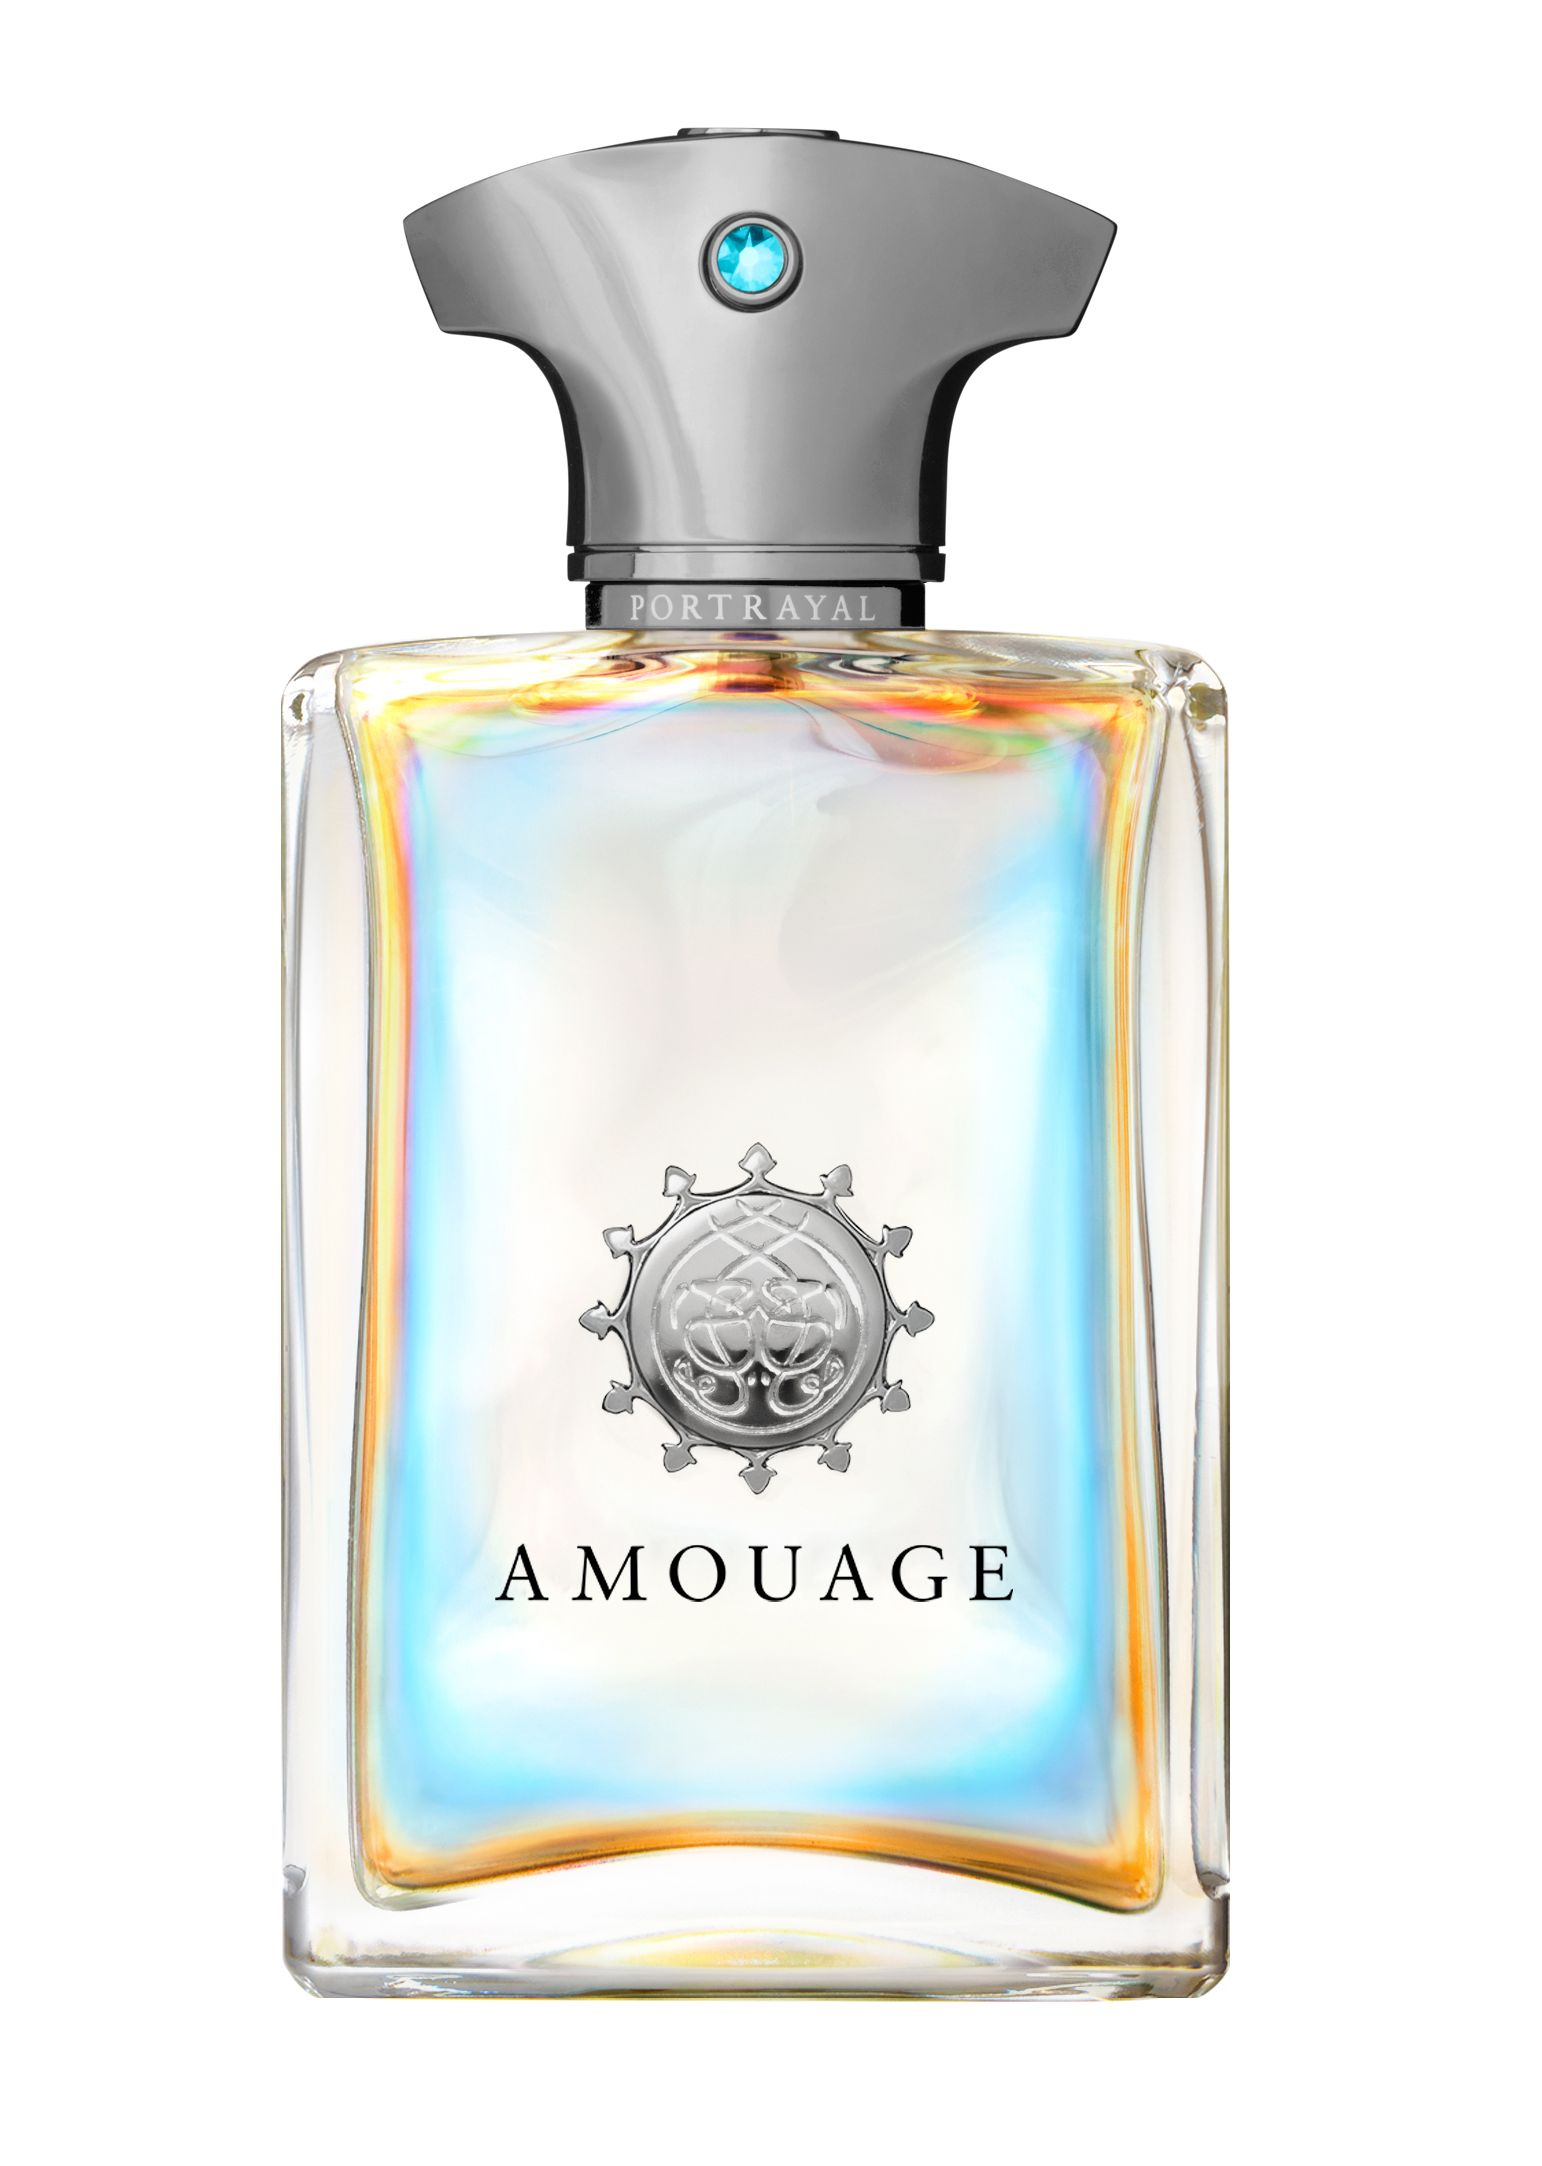 Portrayal Man Amouage Cologne A New Fragrance For Men 2019